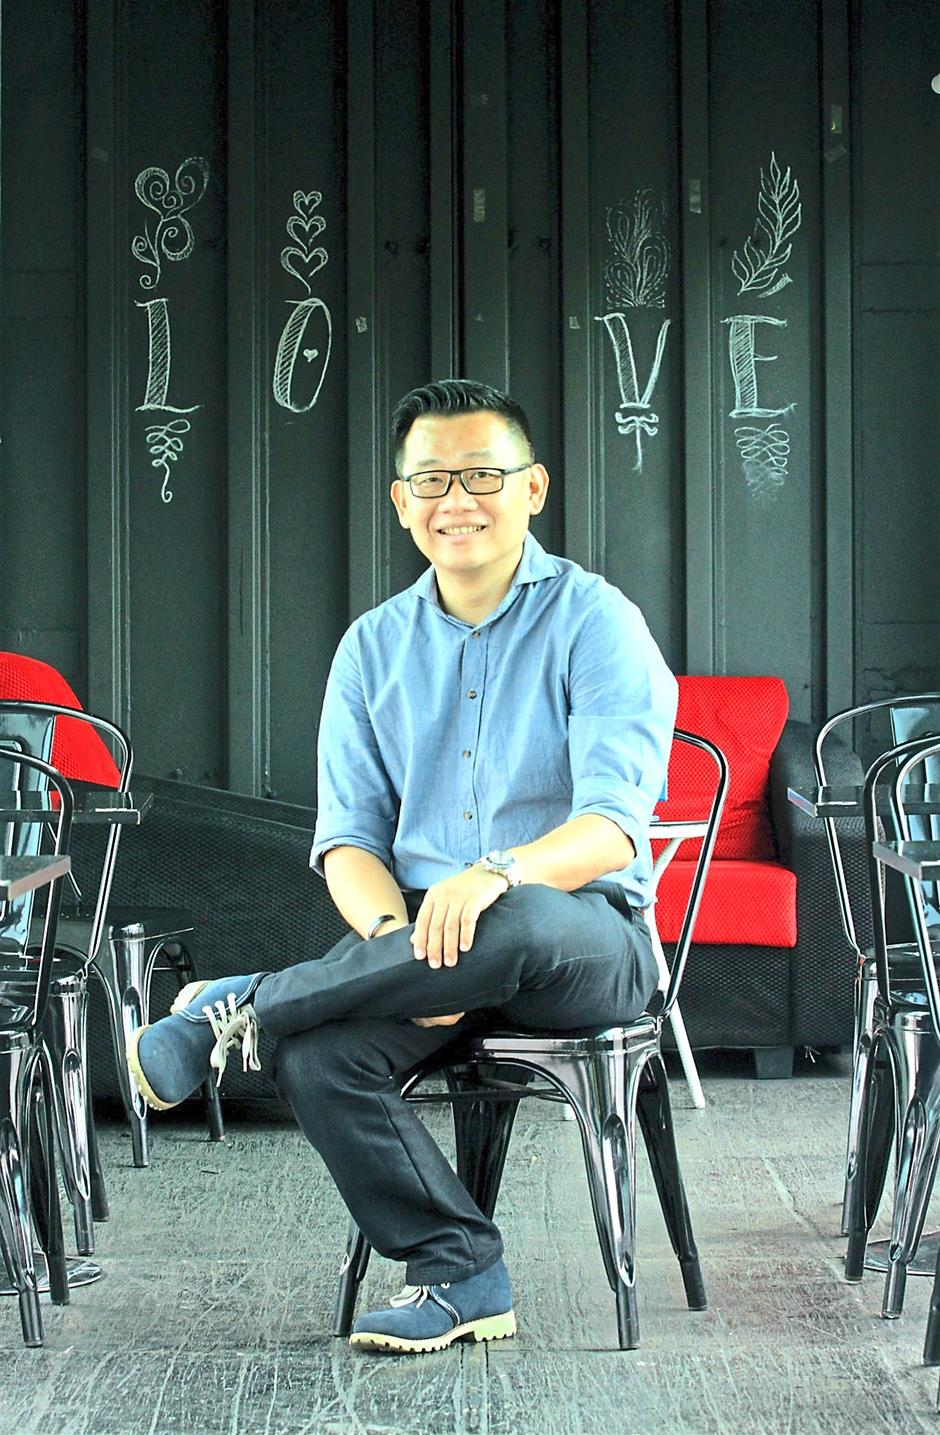 The driving force behind the container cafe concept, Chan intends to introduce more concepts and container ideas at Le Gardenz Cafe.